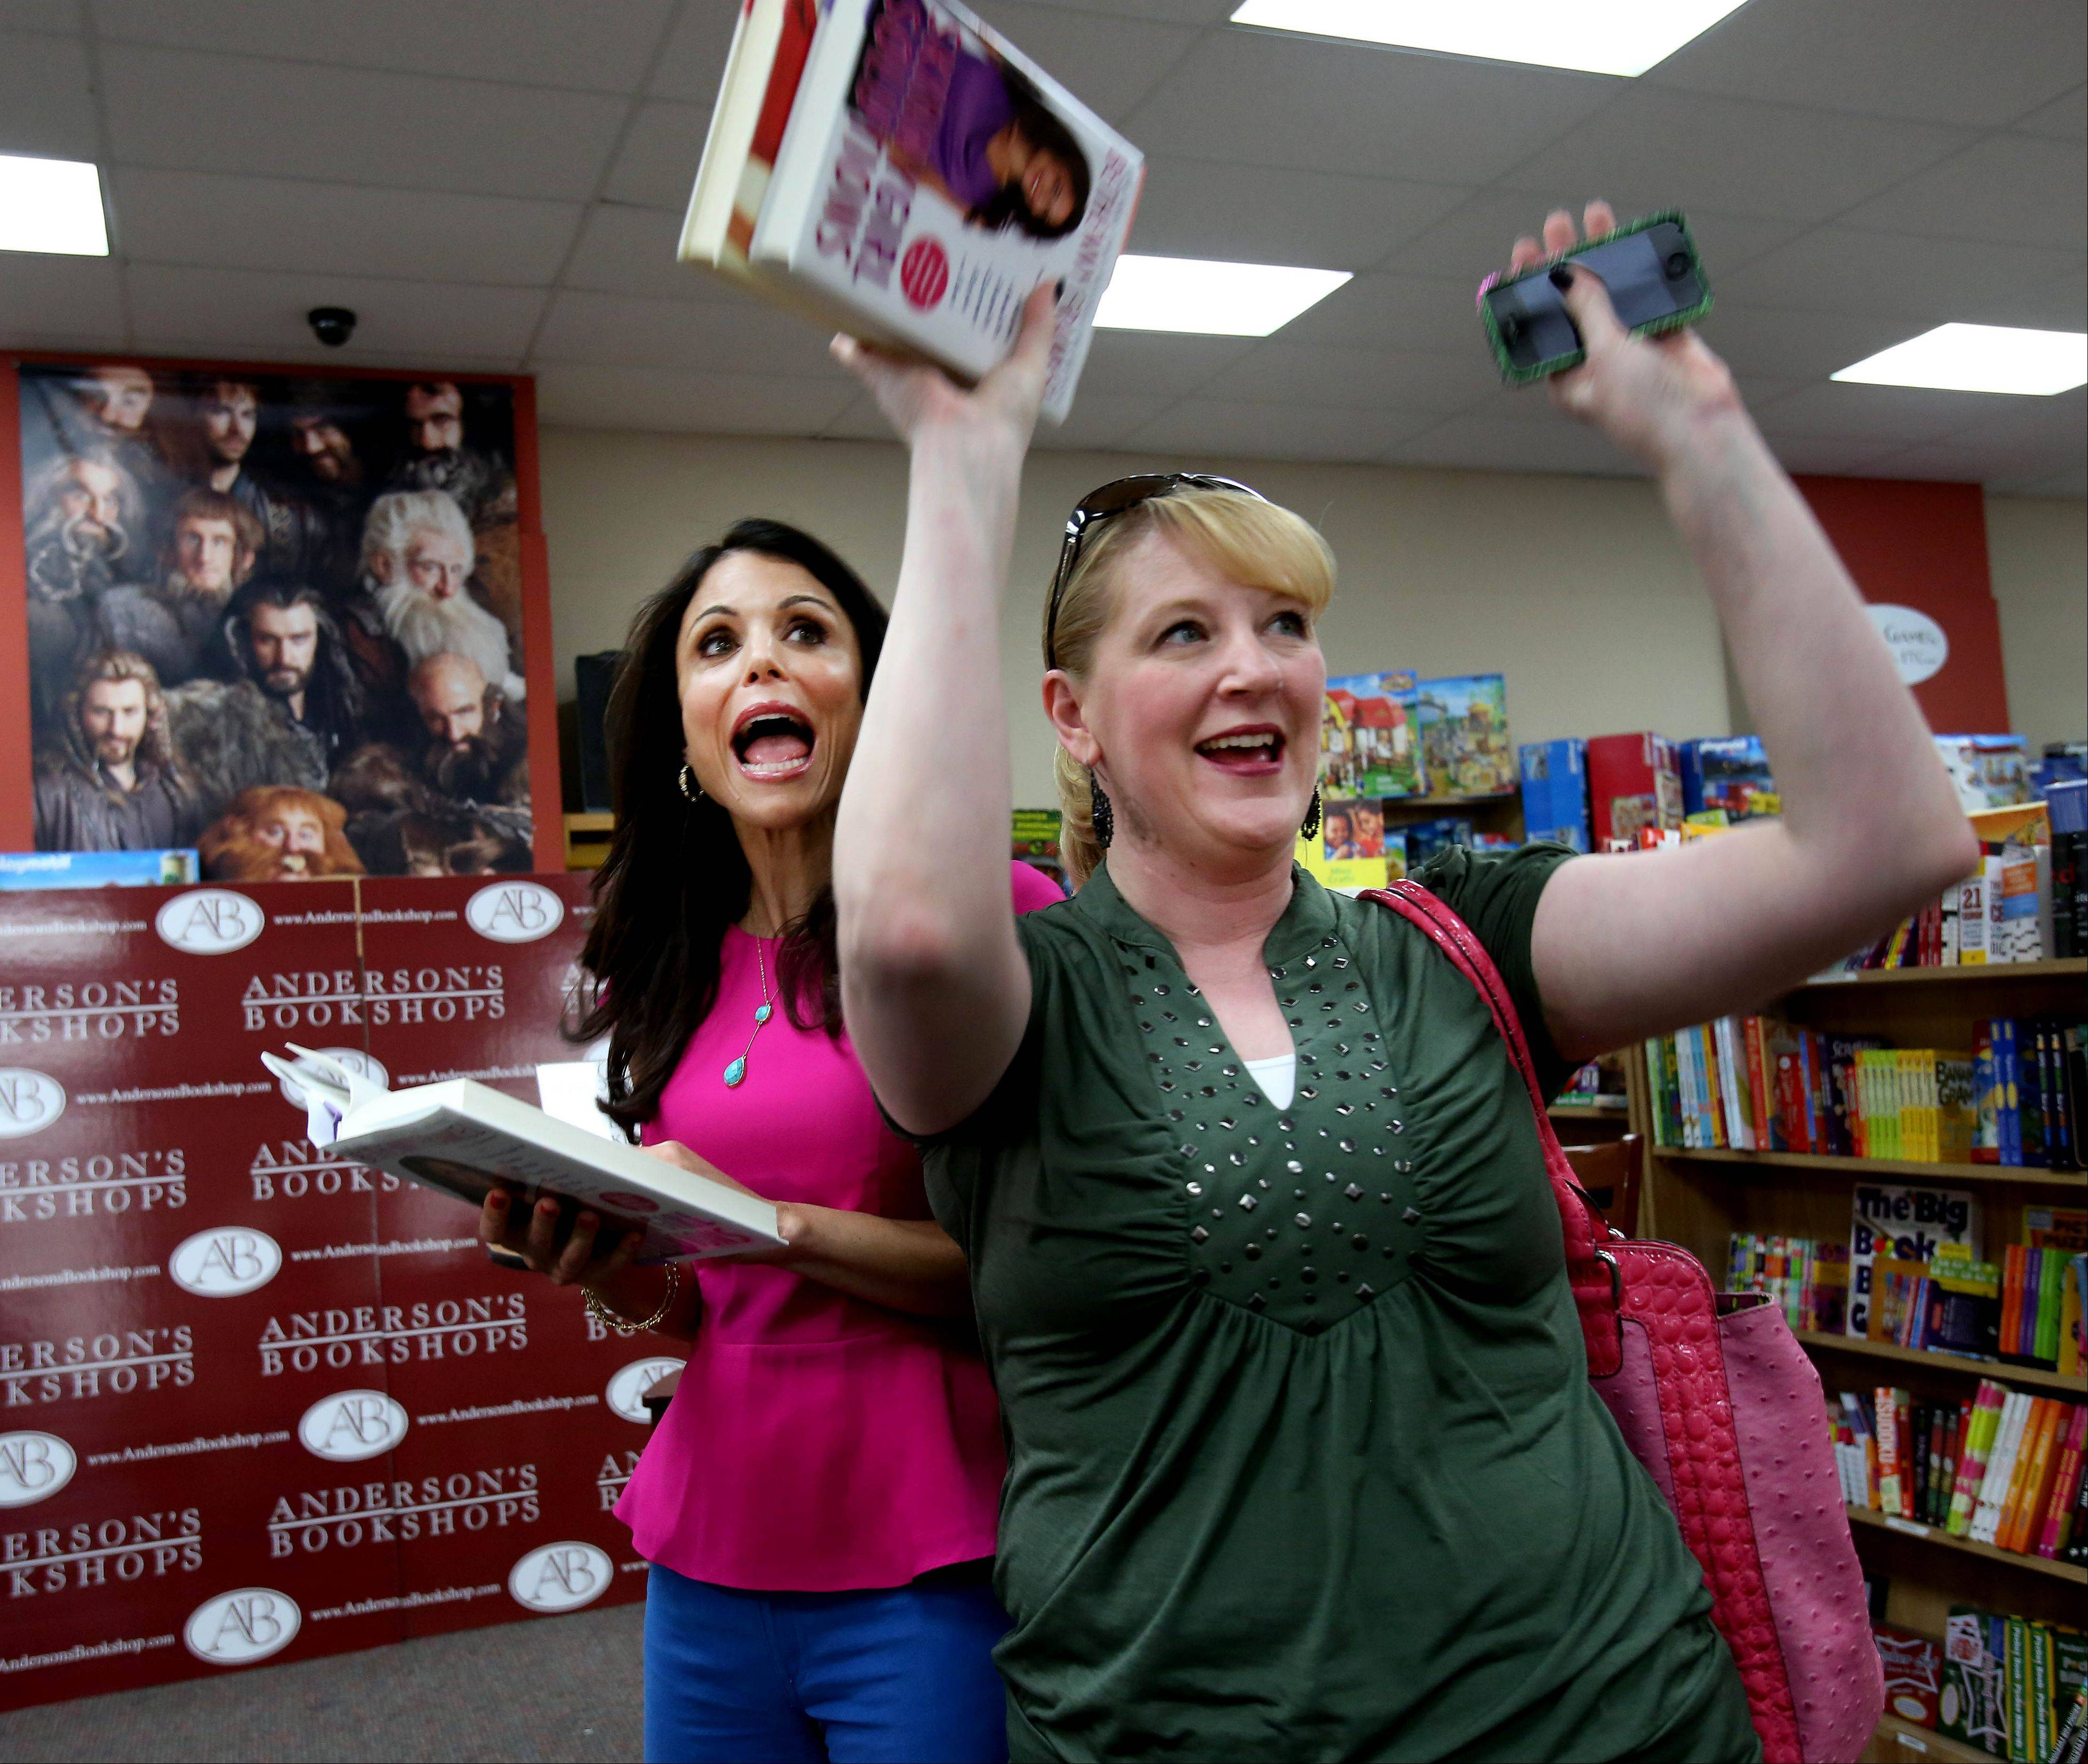 Jennifer Evers of Naperville celebrates with talk show host and Skinnygirl brand creator Bethenny Frankel after Evers won a trip to New York City to attend the filming of Frankel�s talk show �bethenny� during an event Tuesday at Anderson�s Bookshop in downtown Naperville.